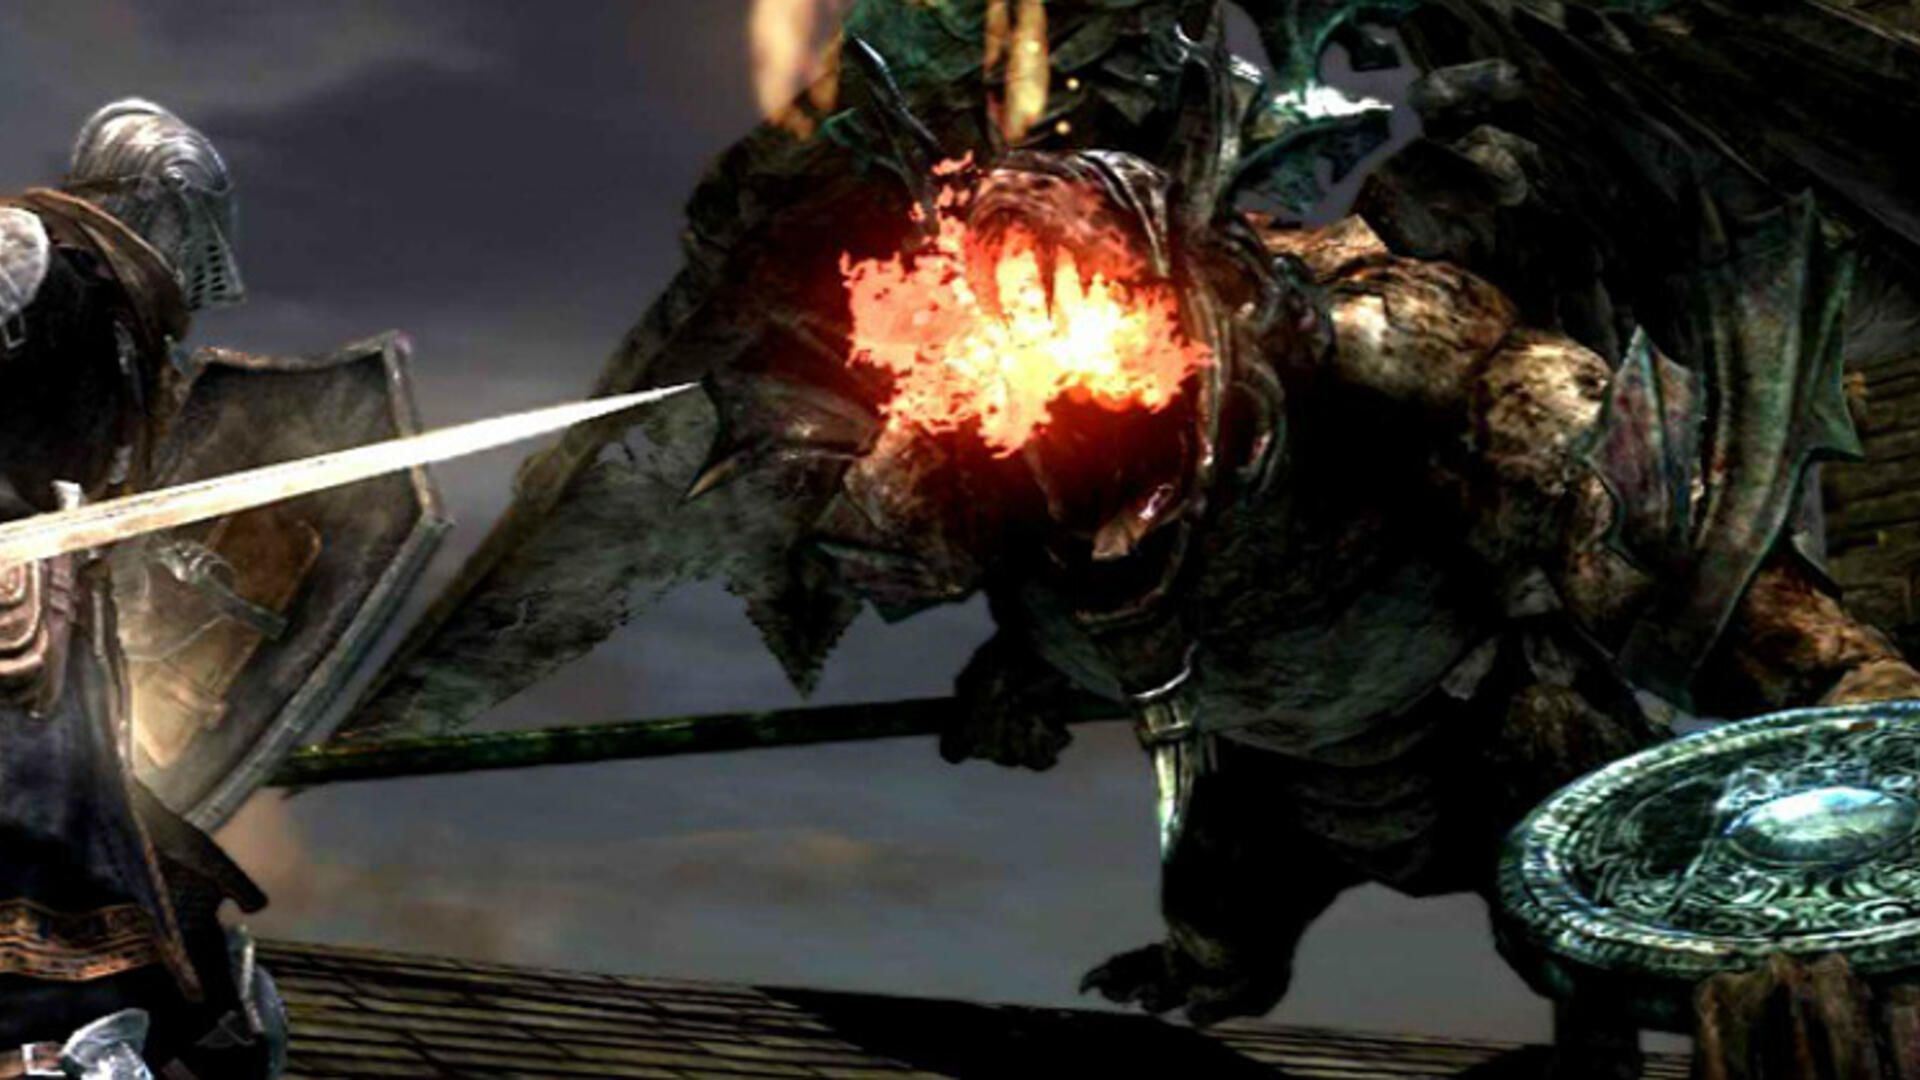 Five Harsh Lessons Learned from Returning to Demon's Souls